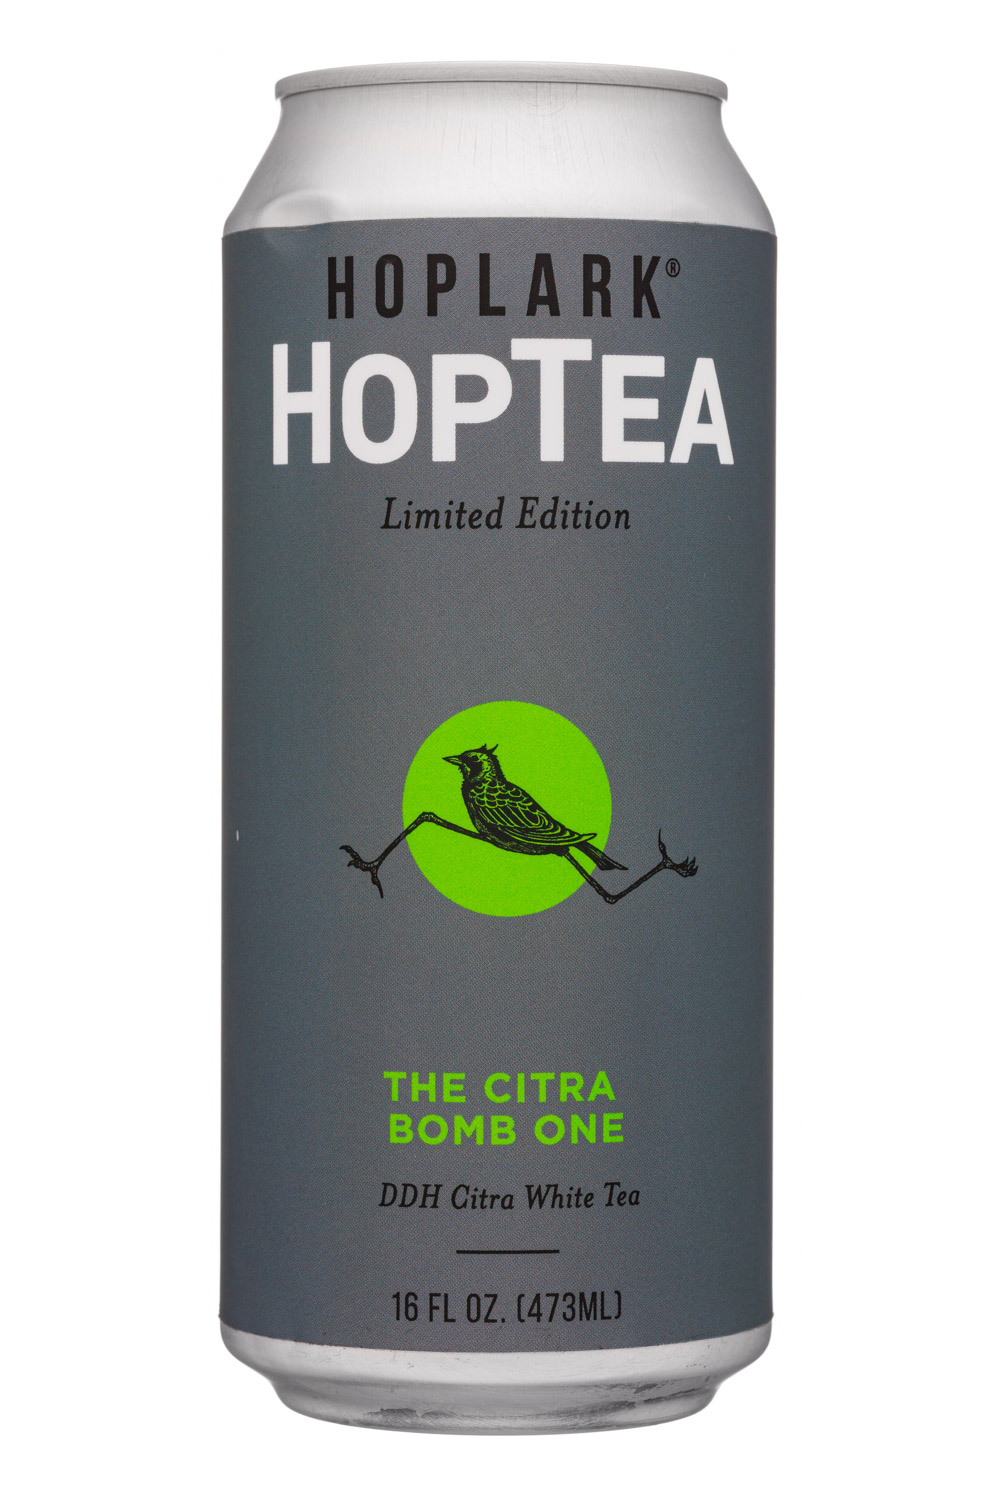 The Citra Bomb One